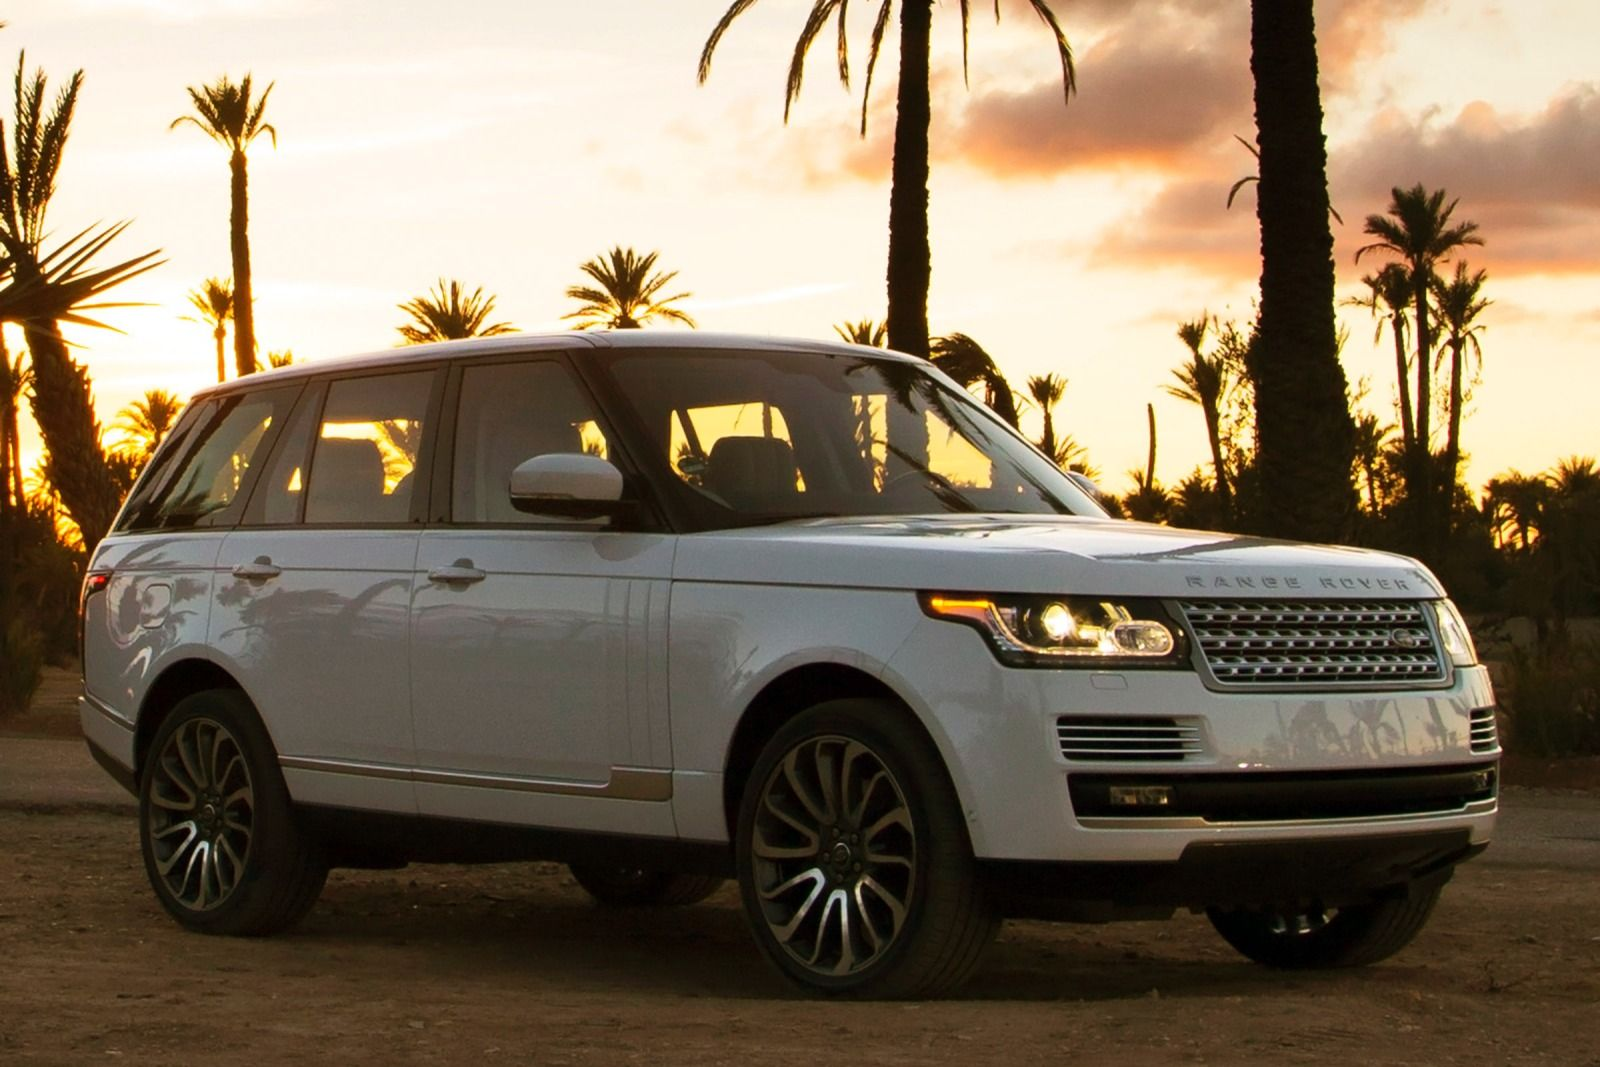 2015 Land Rover Range Rover 4wd High Quality Wallpaper